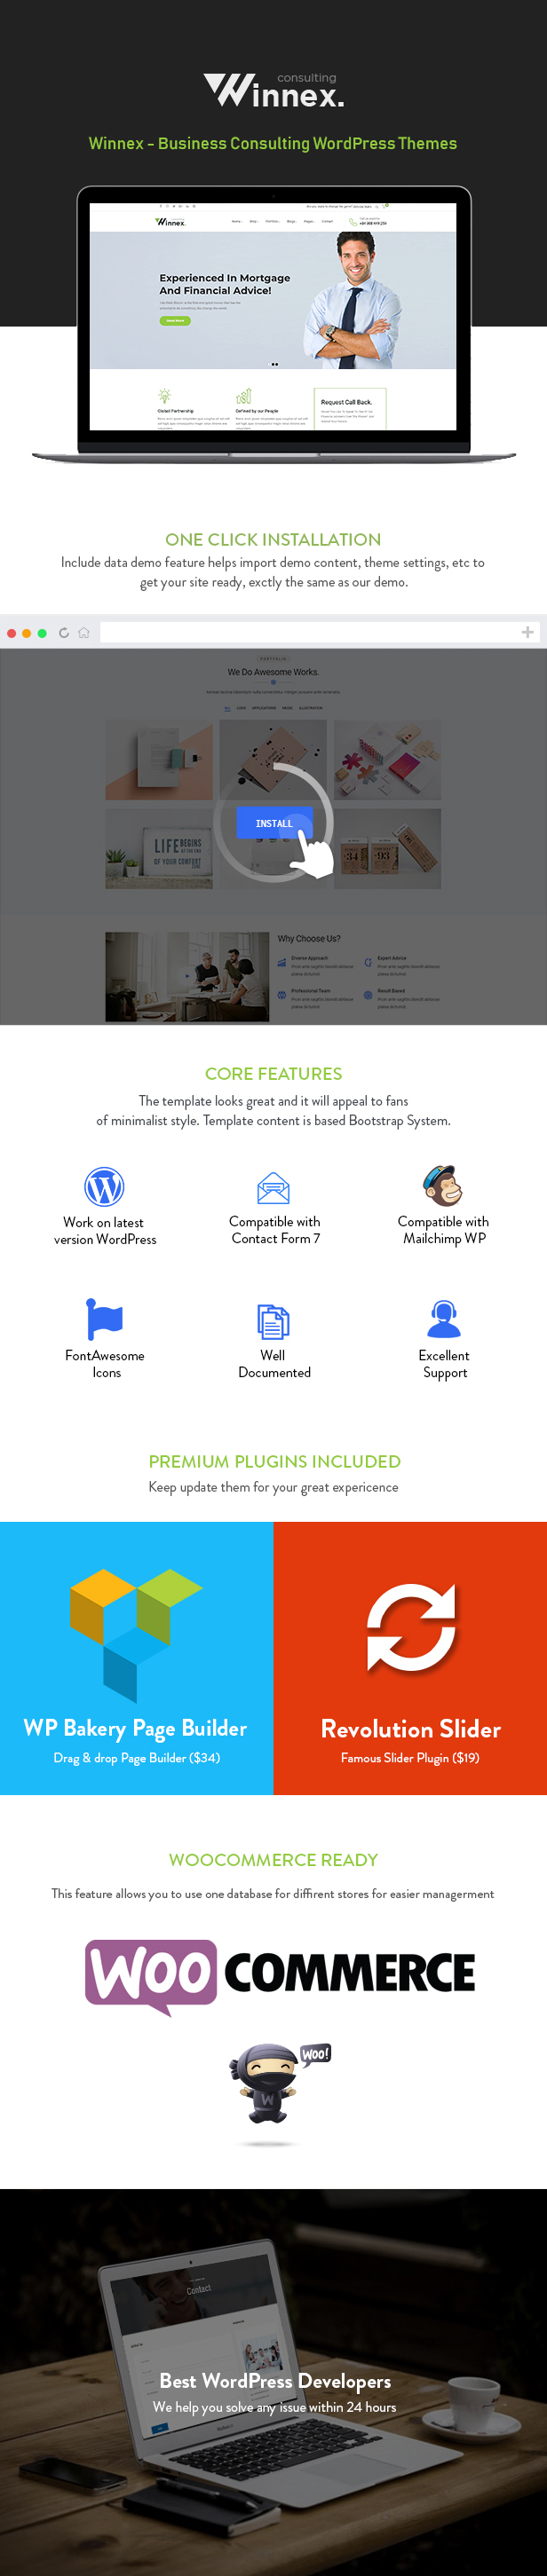 Winnex WordPress Theme